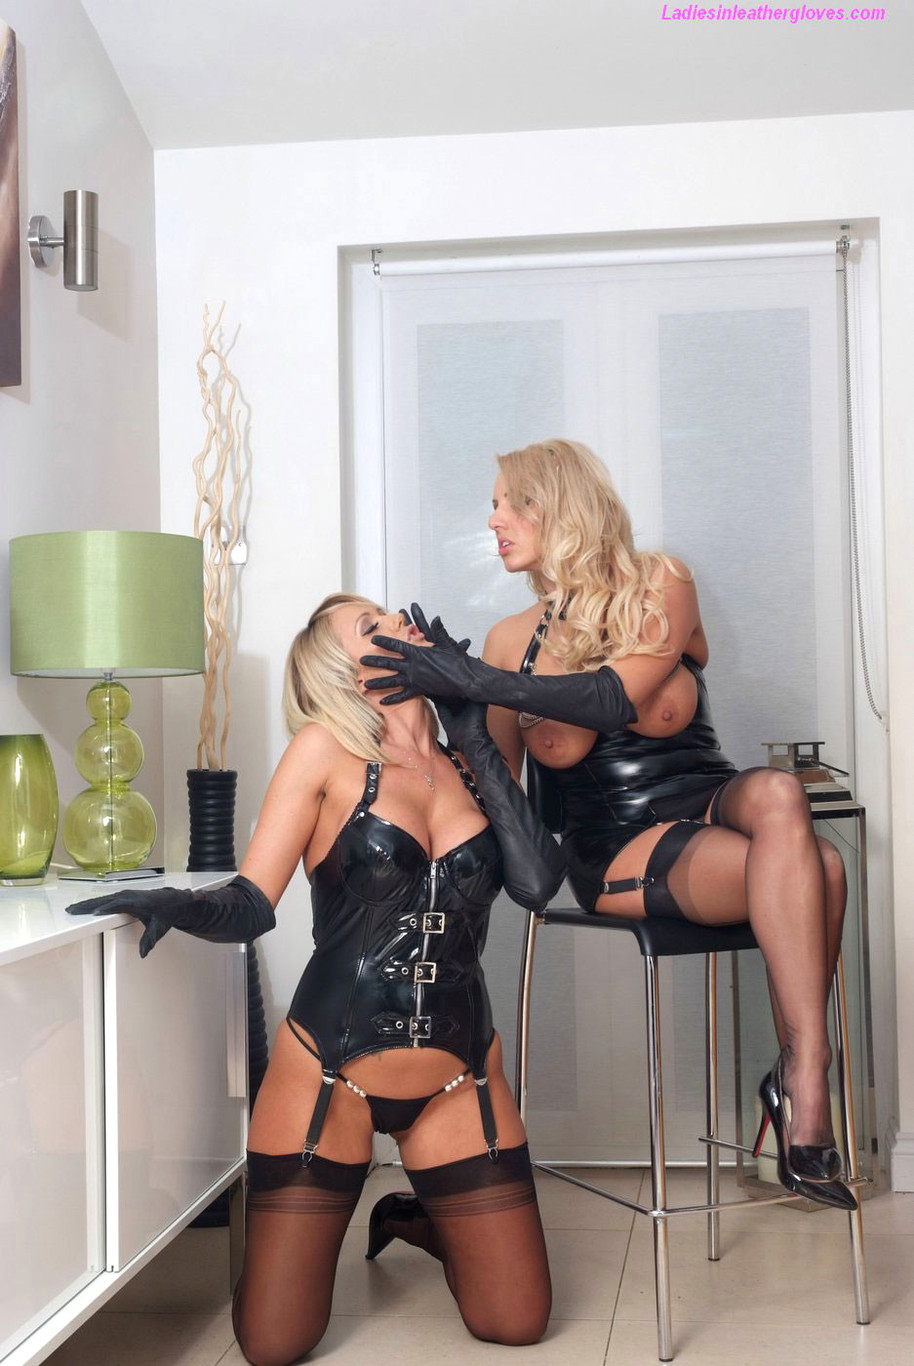 Dannii Harwood Lucy Zara Complete babe today ladies in leather gloves lucy zara dannii harwood